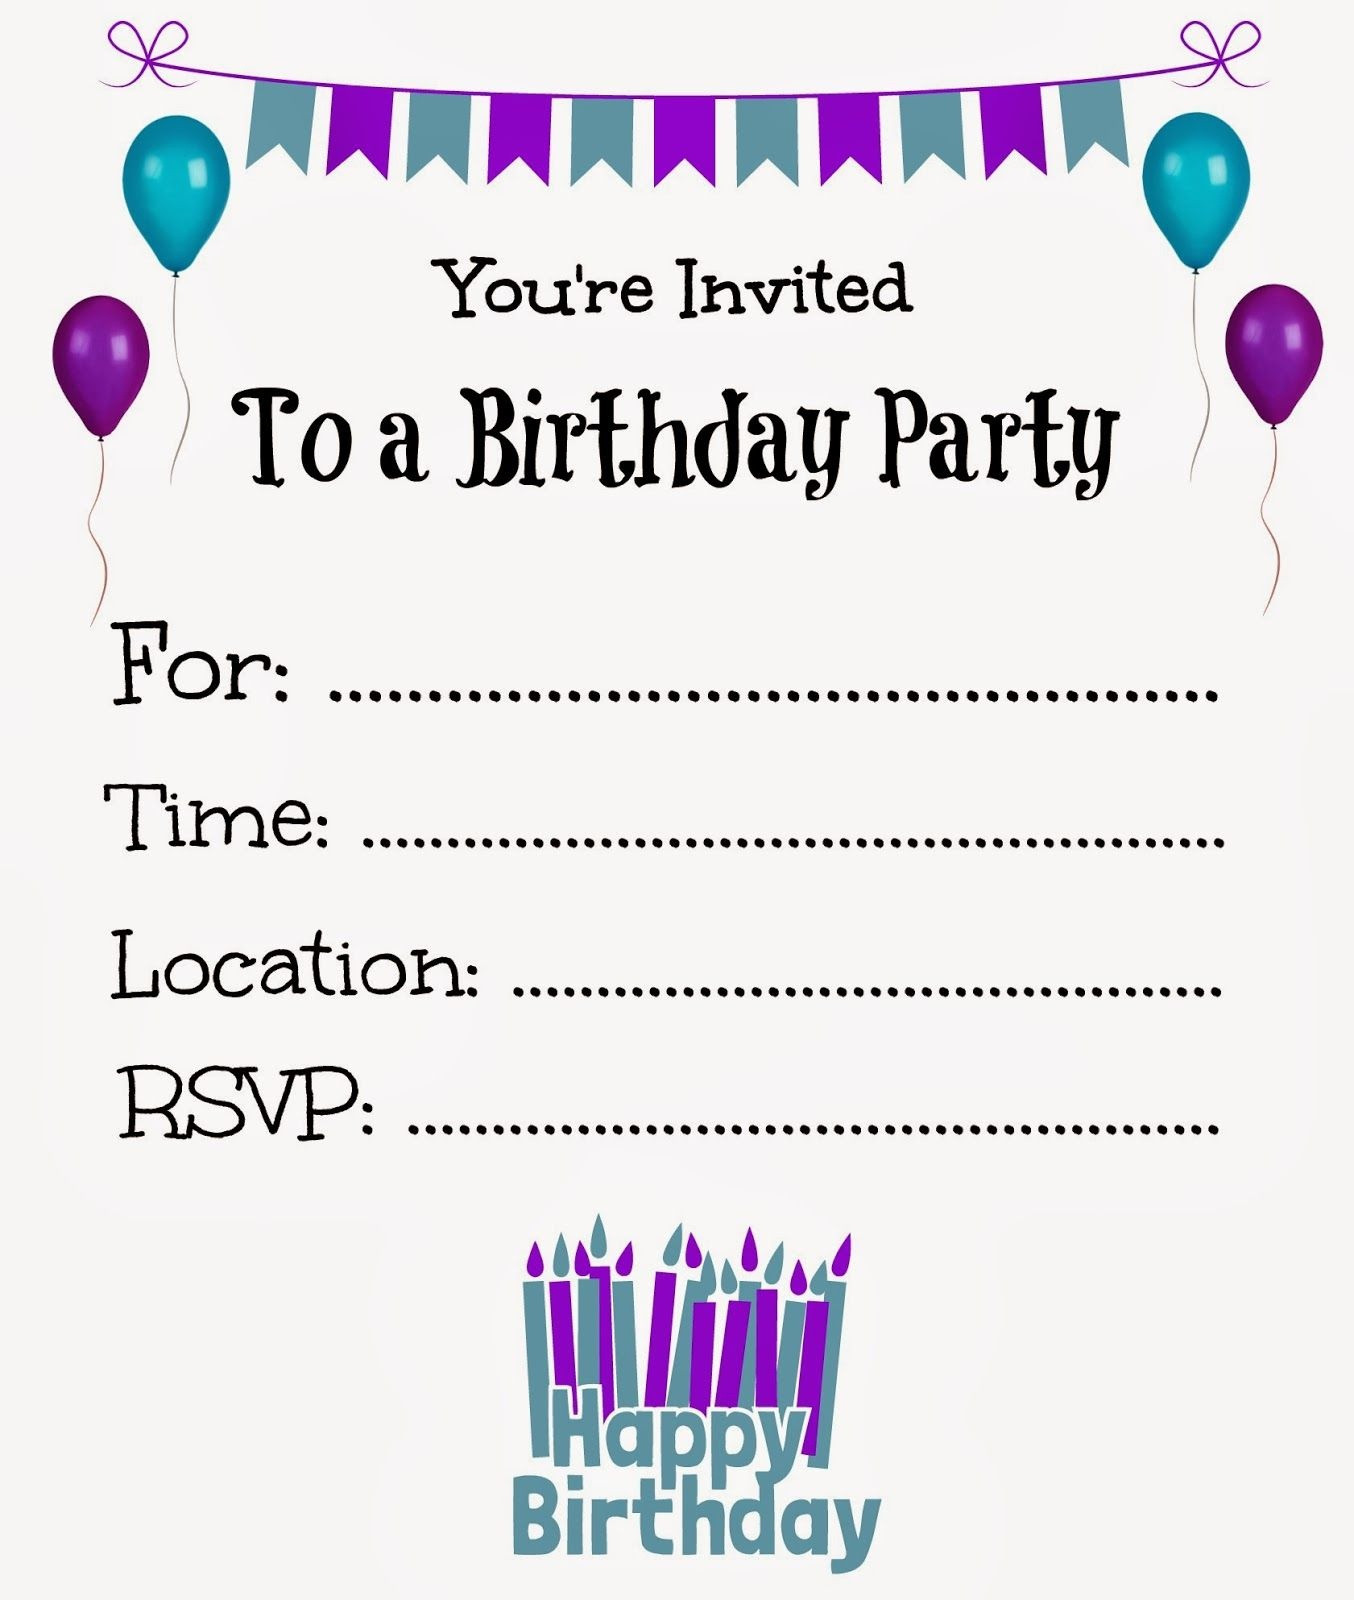 Free Printable Birthday Invitations For Kids #freeprintables - Party Invitation Maker Online Free Printable